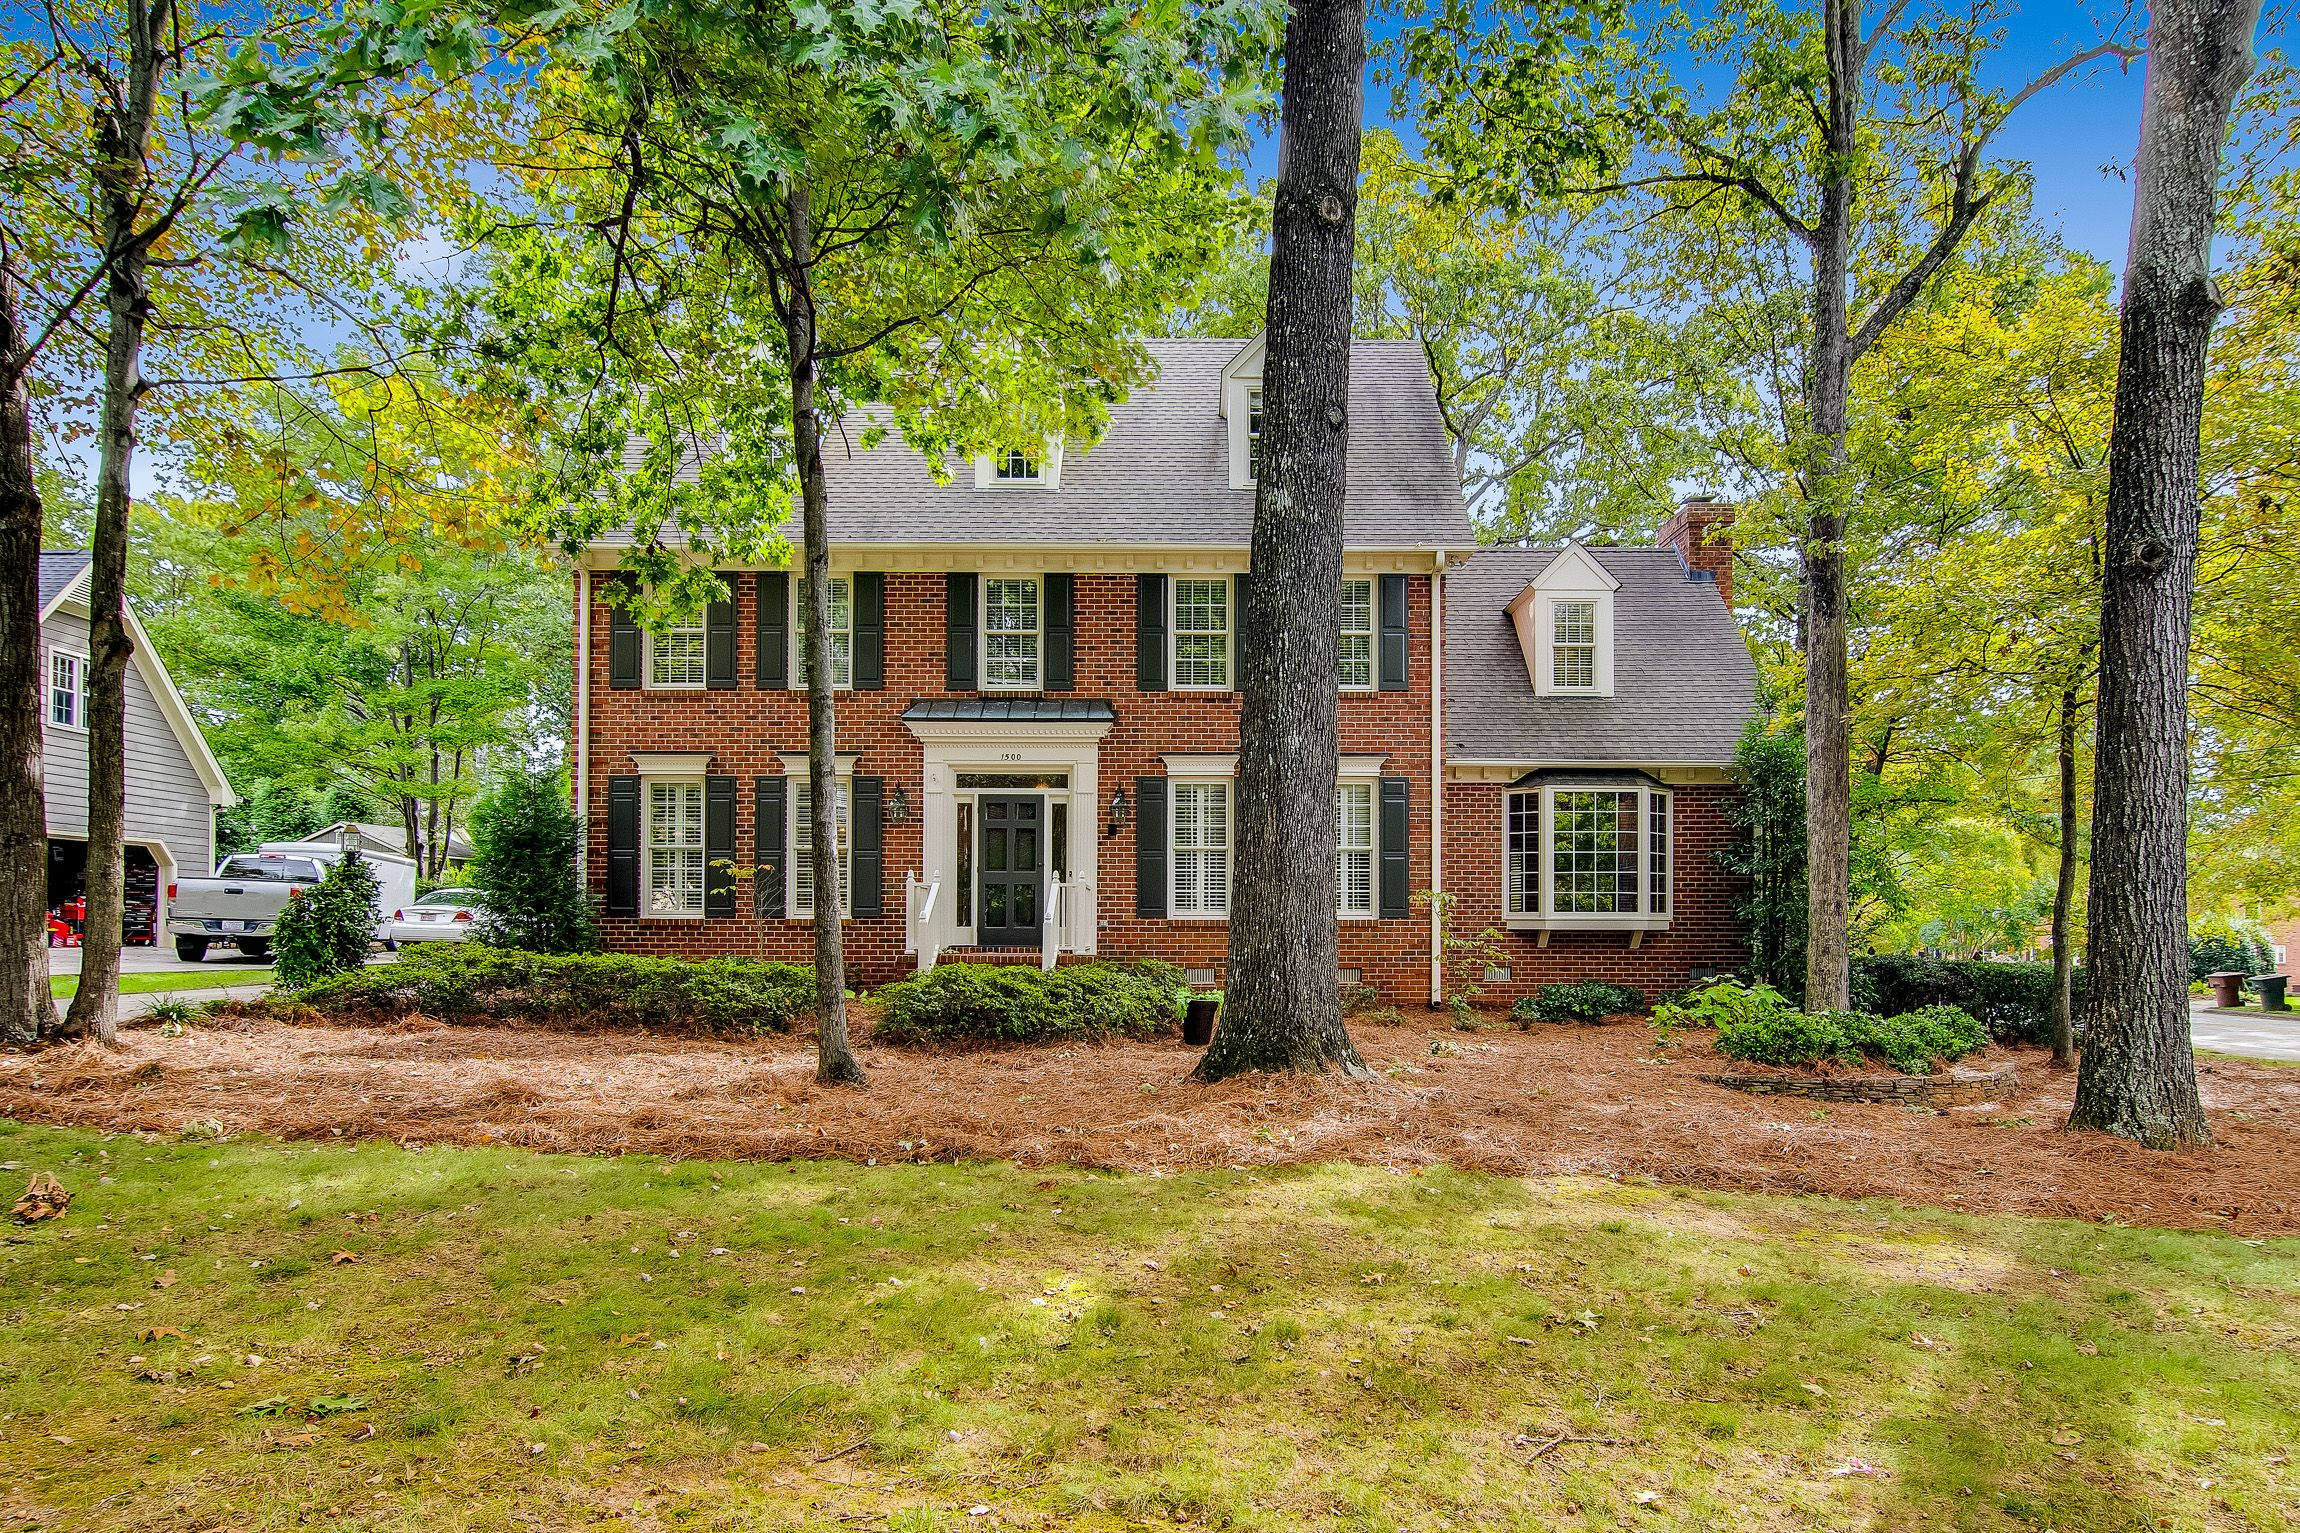 Swell 1500 Clarendon Dr Greensboro Nc 27410 My Listings House Interior Design Ideas Ghosoteloinfo